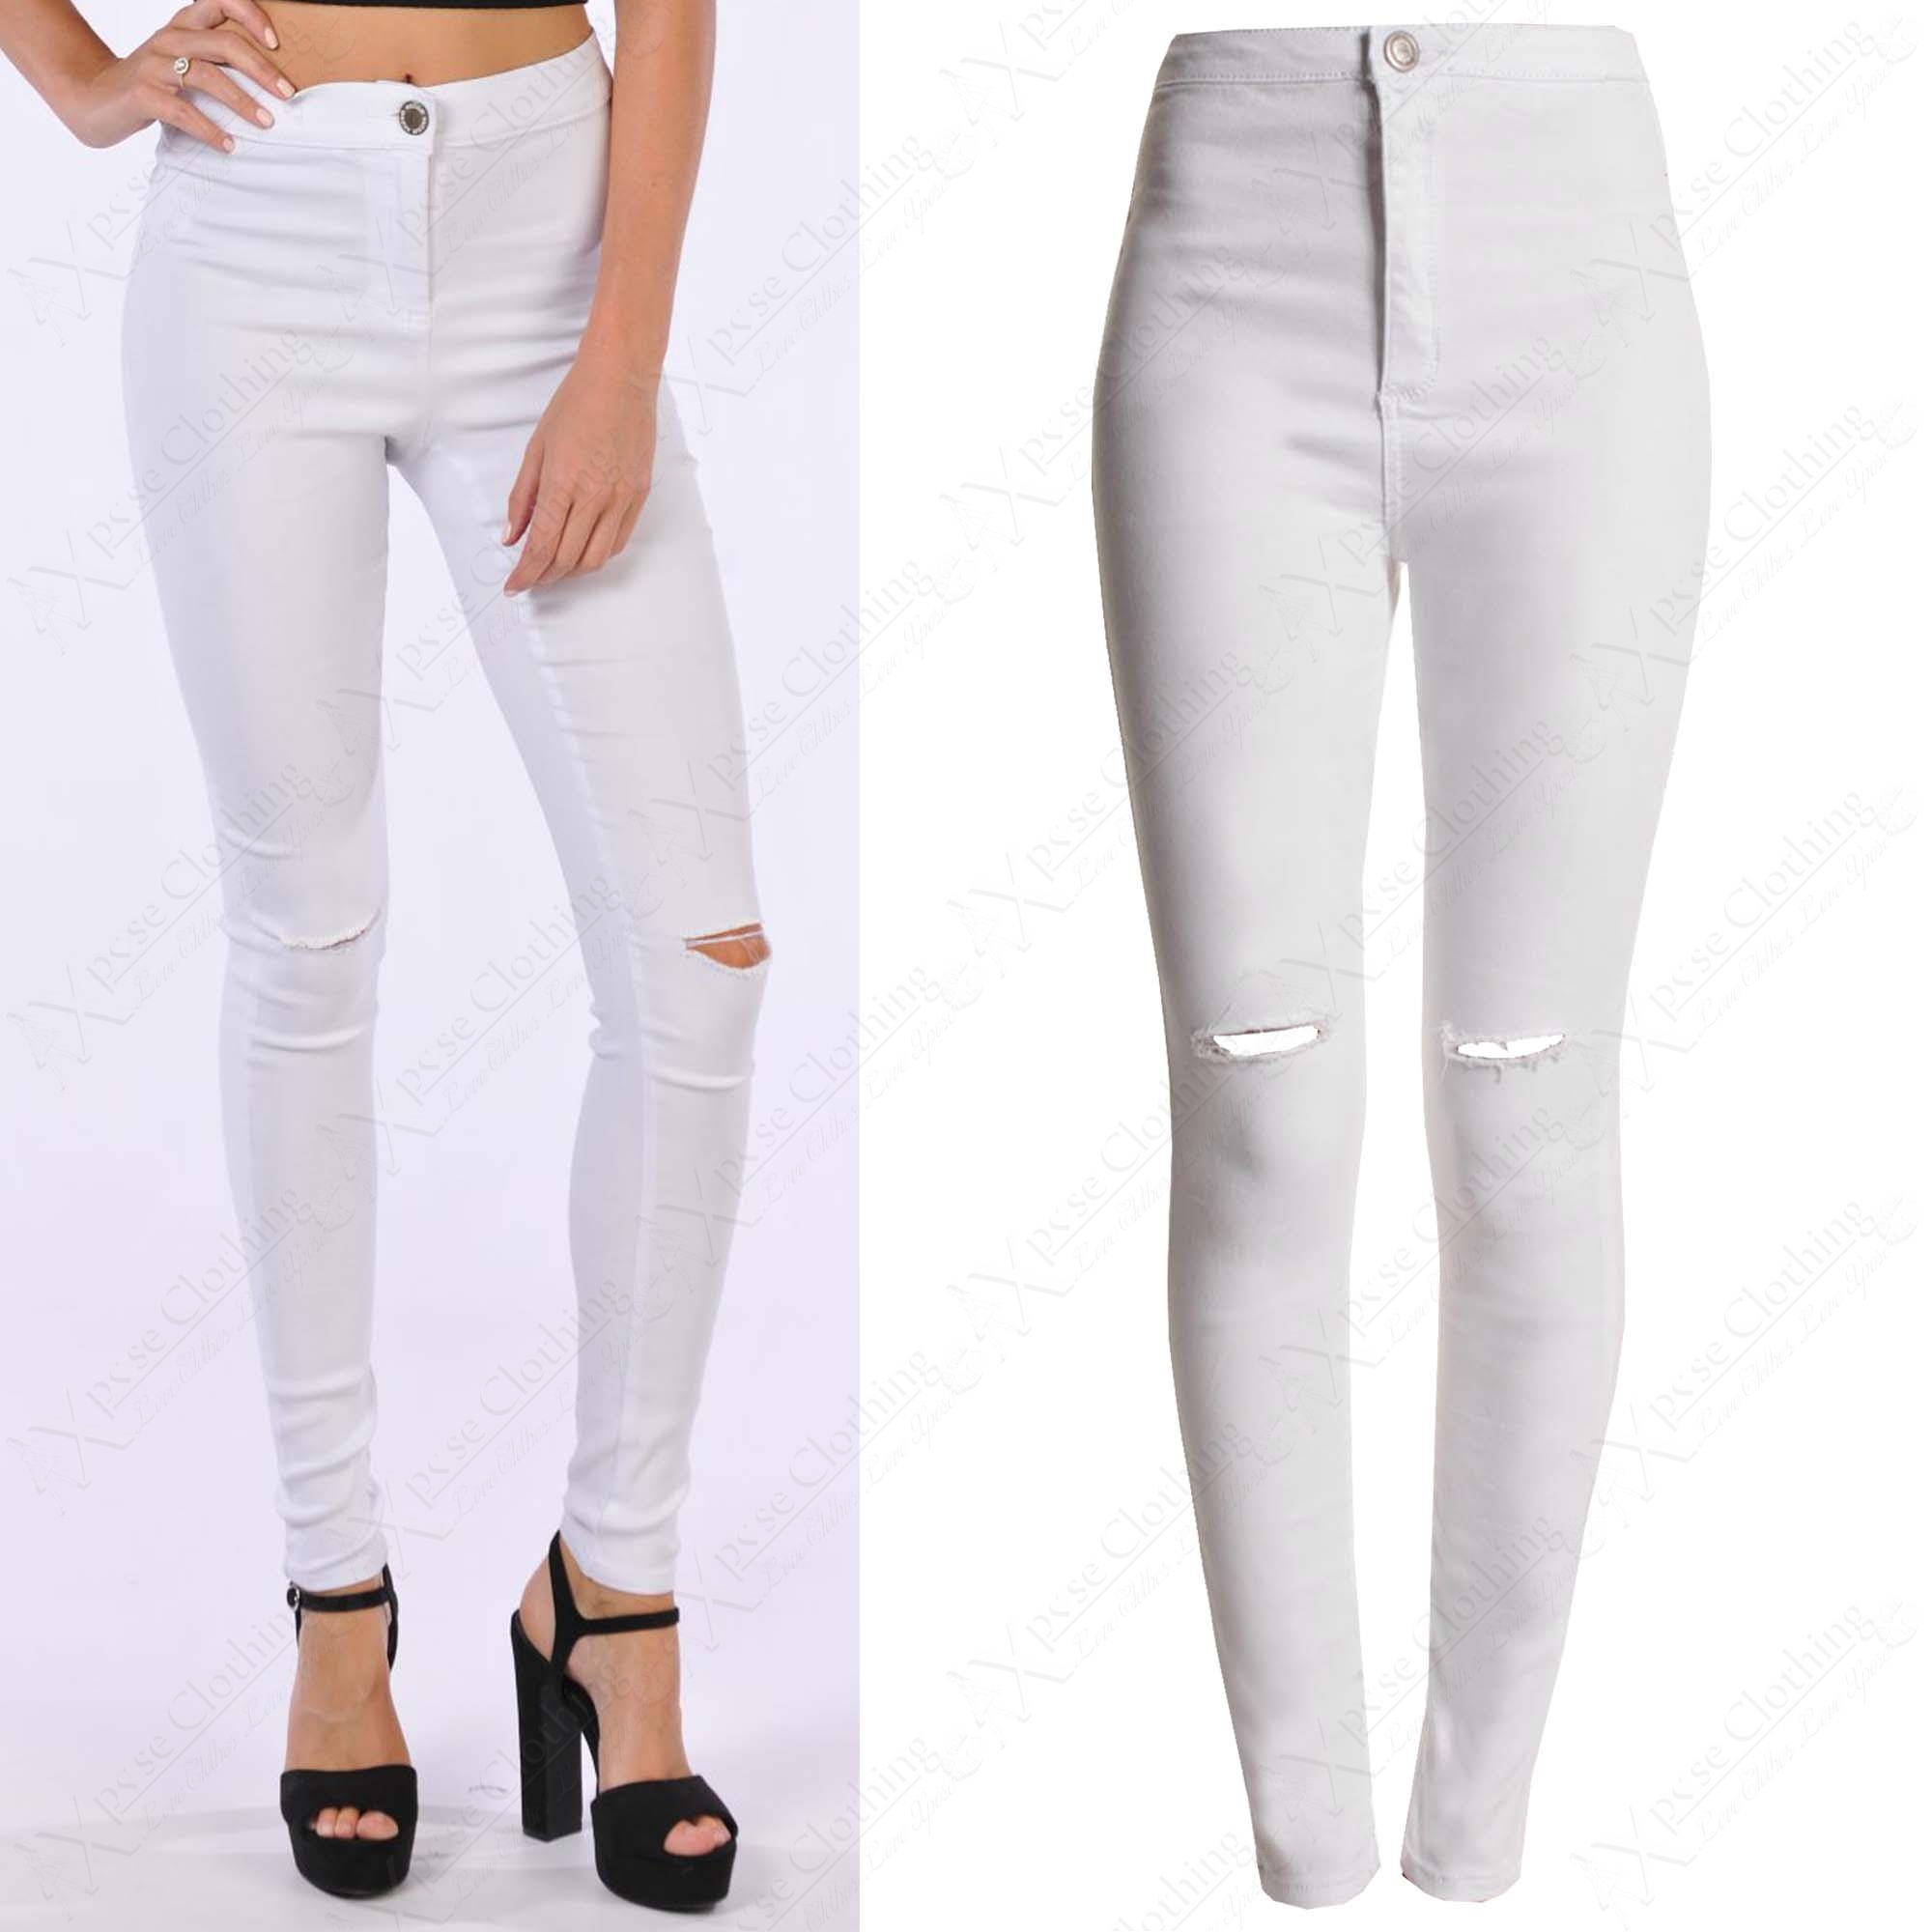 NEW WOMENS RIPPED KNEE WHITE SKINNY JEANS LADIES HIGH WAIST CUT ...